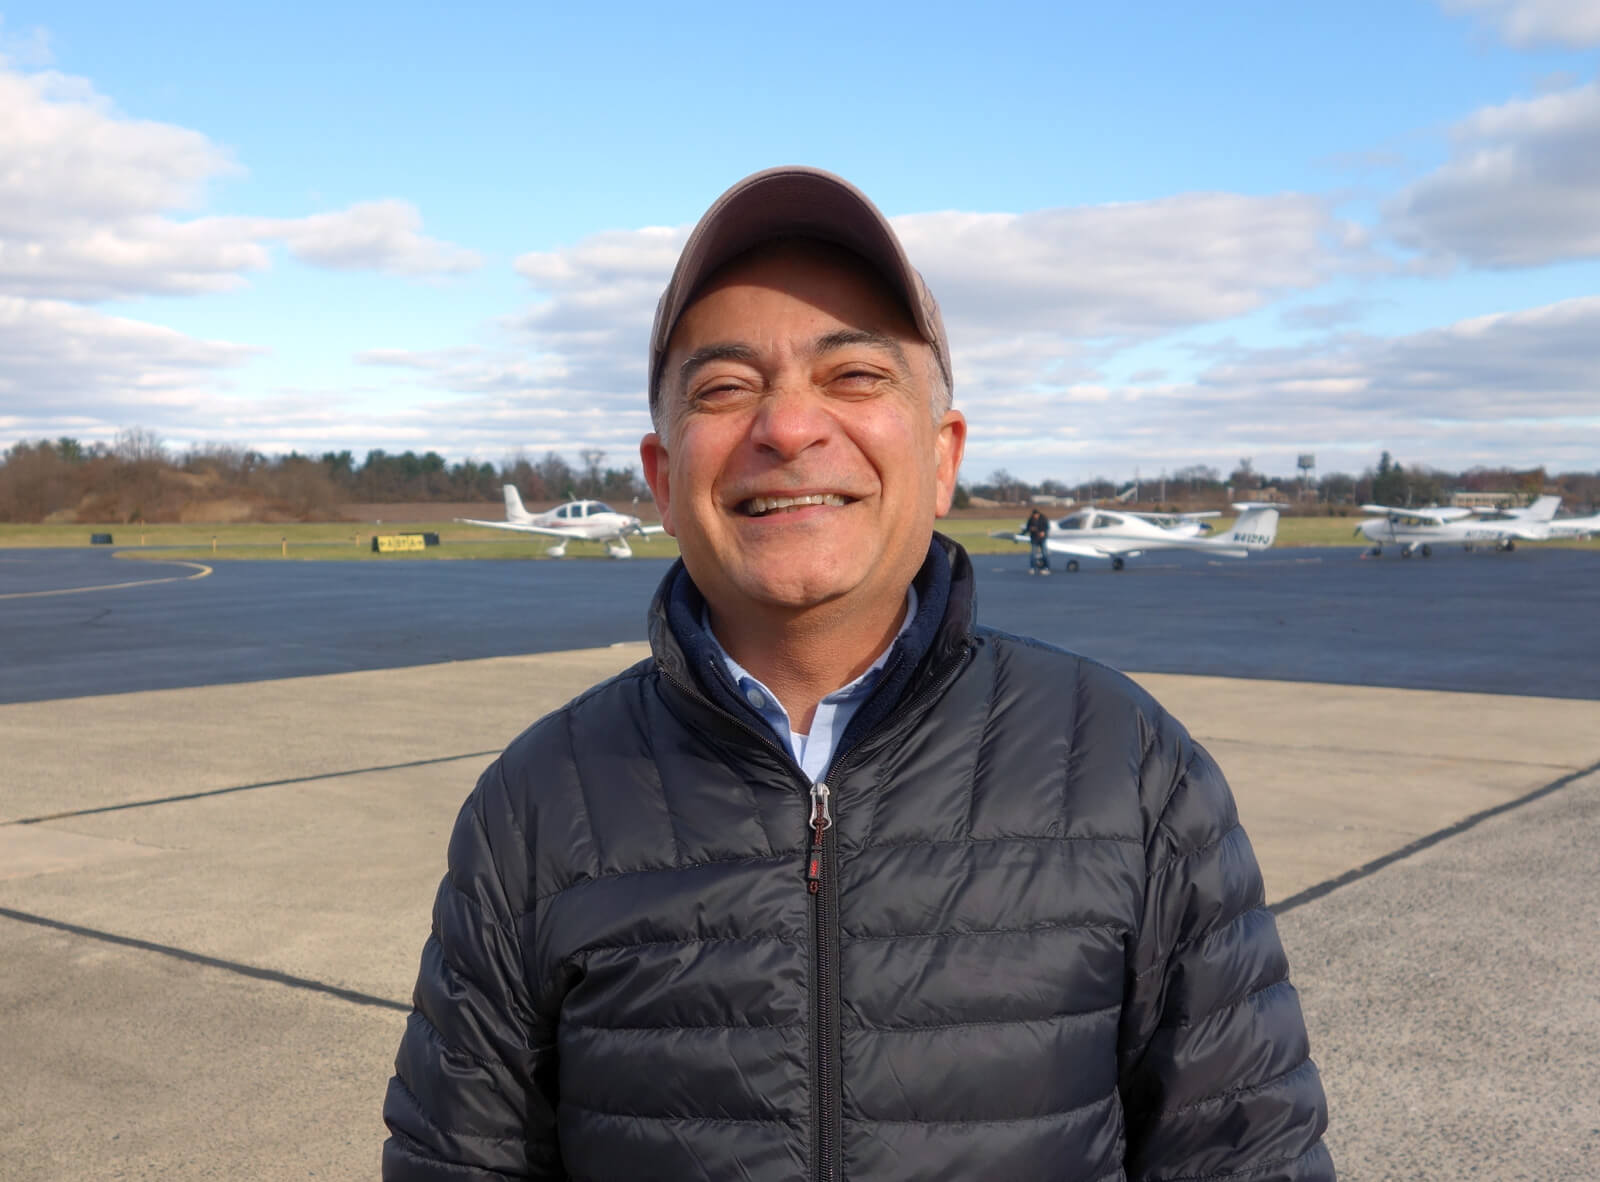 Sal Parsi, CFI, Princeton Flying School